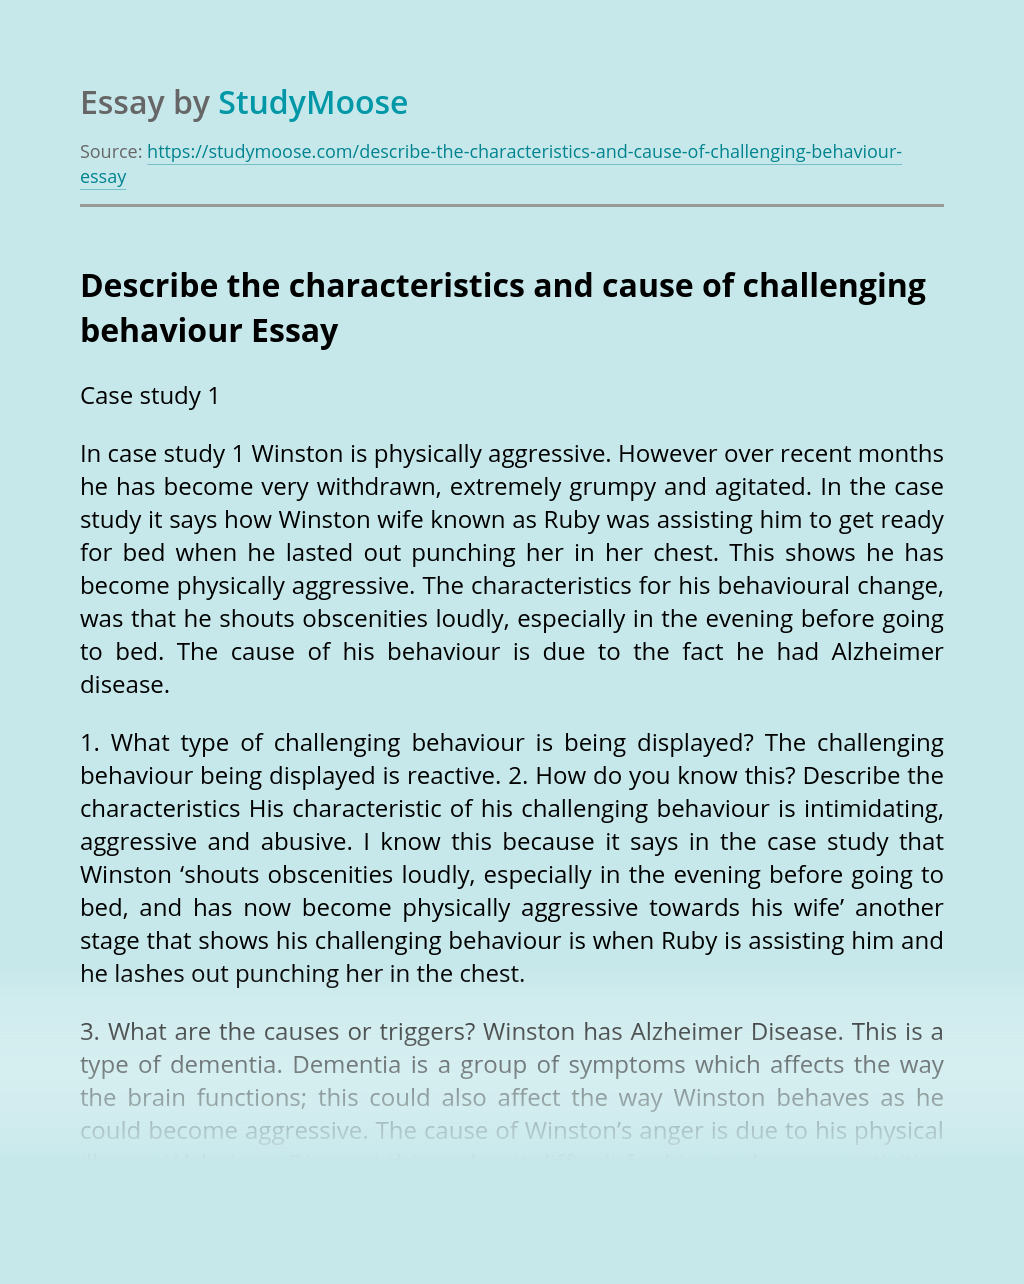 Describe the characteristics and cause of challenging behaviour